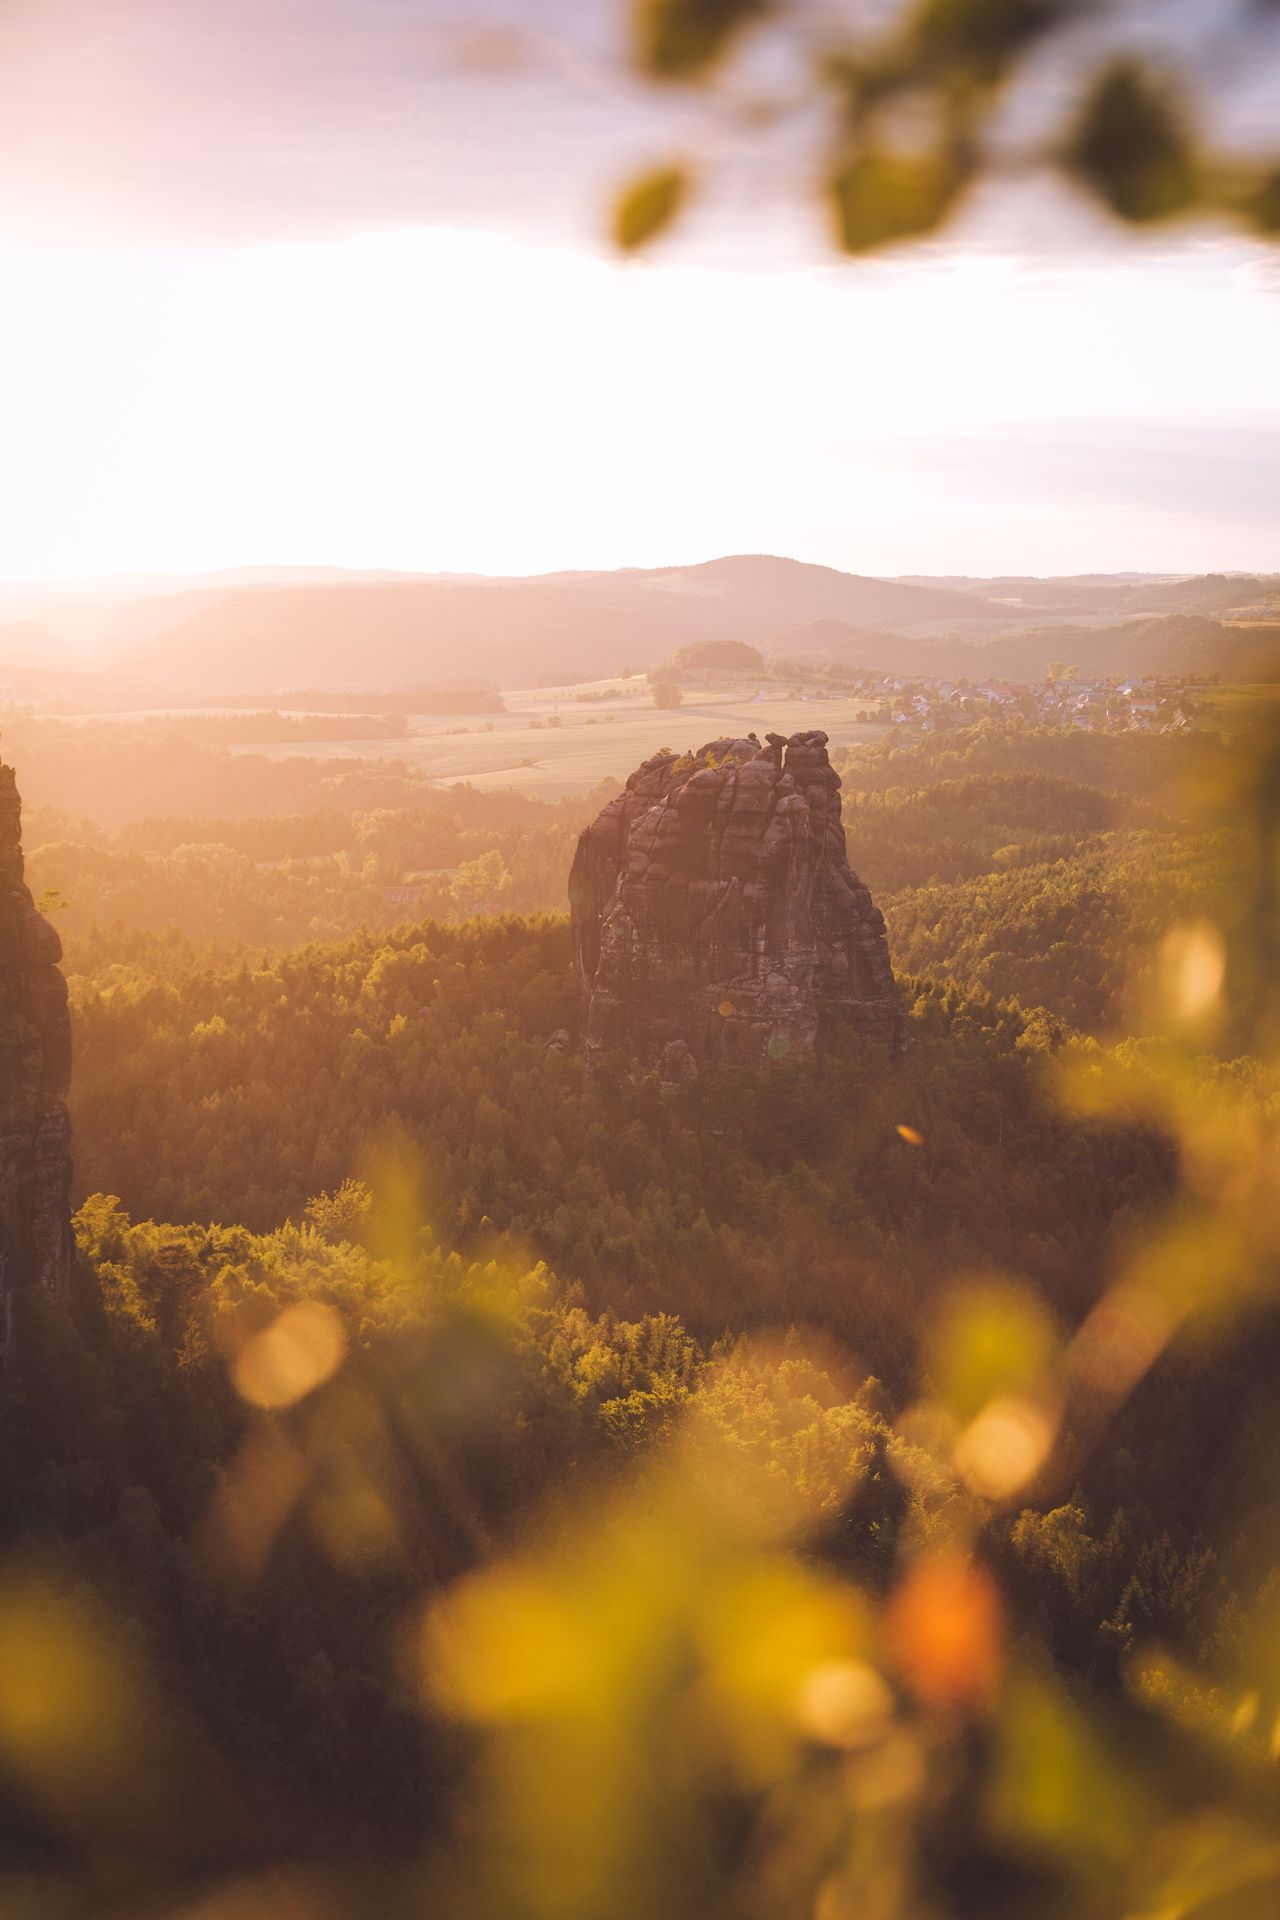 Framed by nature. Nature Beauty In Nature Landscape Tranquility Scenics No People Mountain Tranquil Scene Sky Outdoors Tree Day Saxon Switzerland